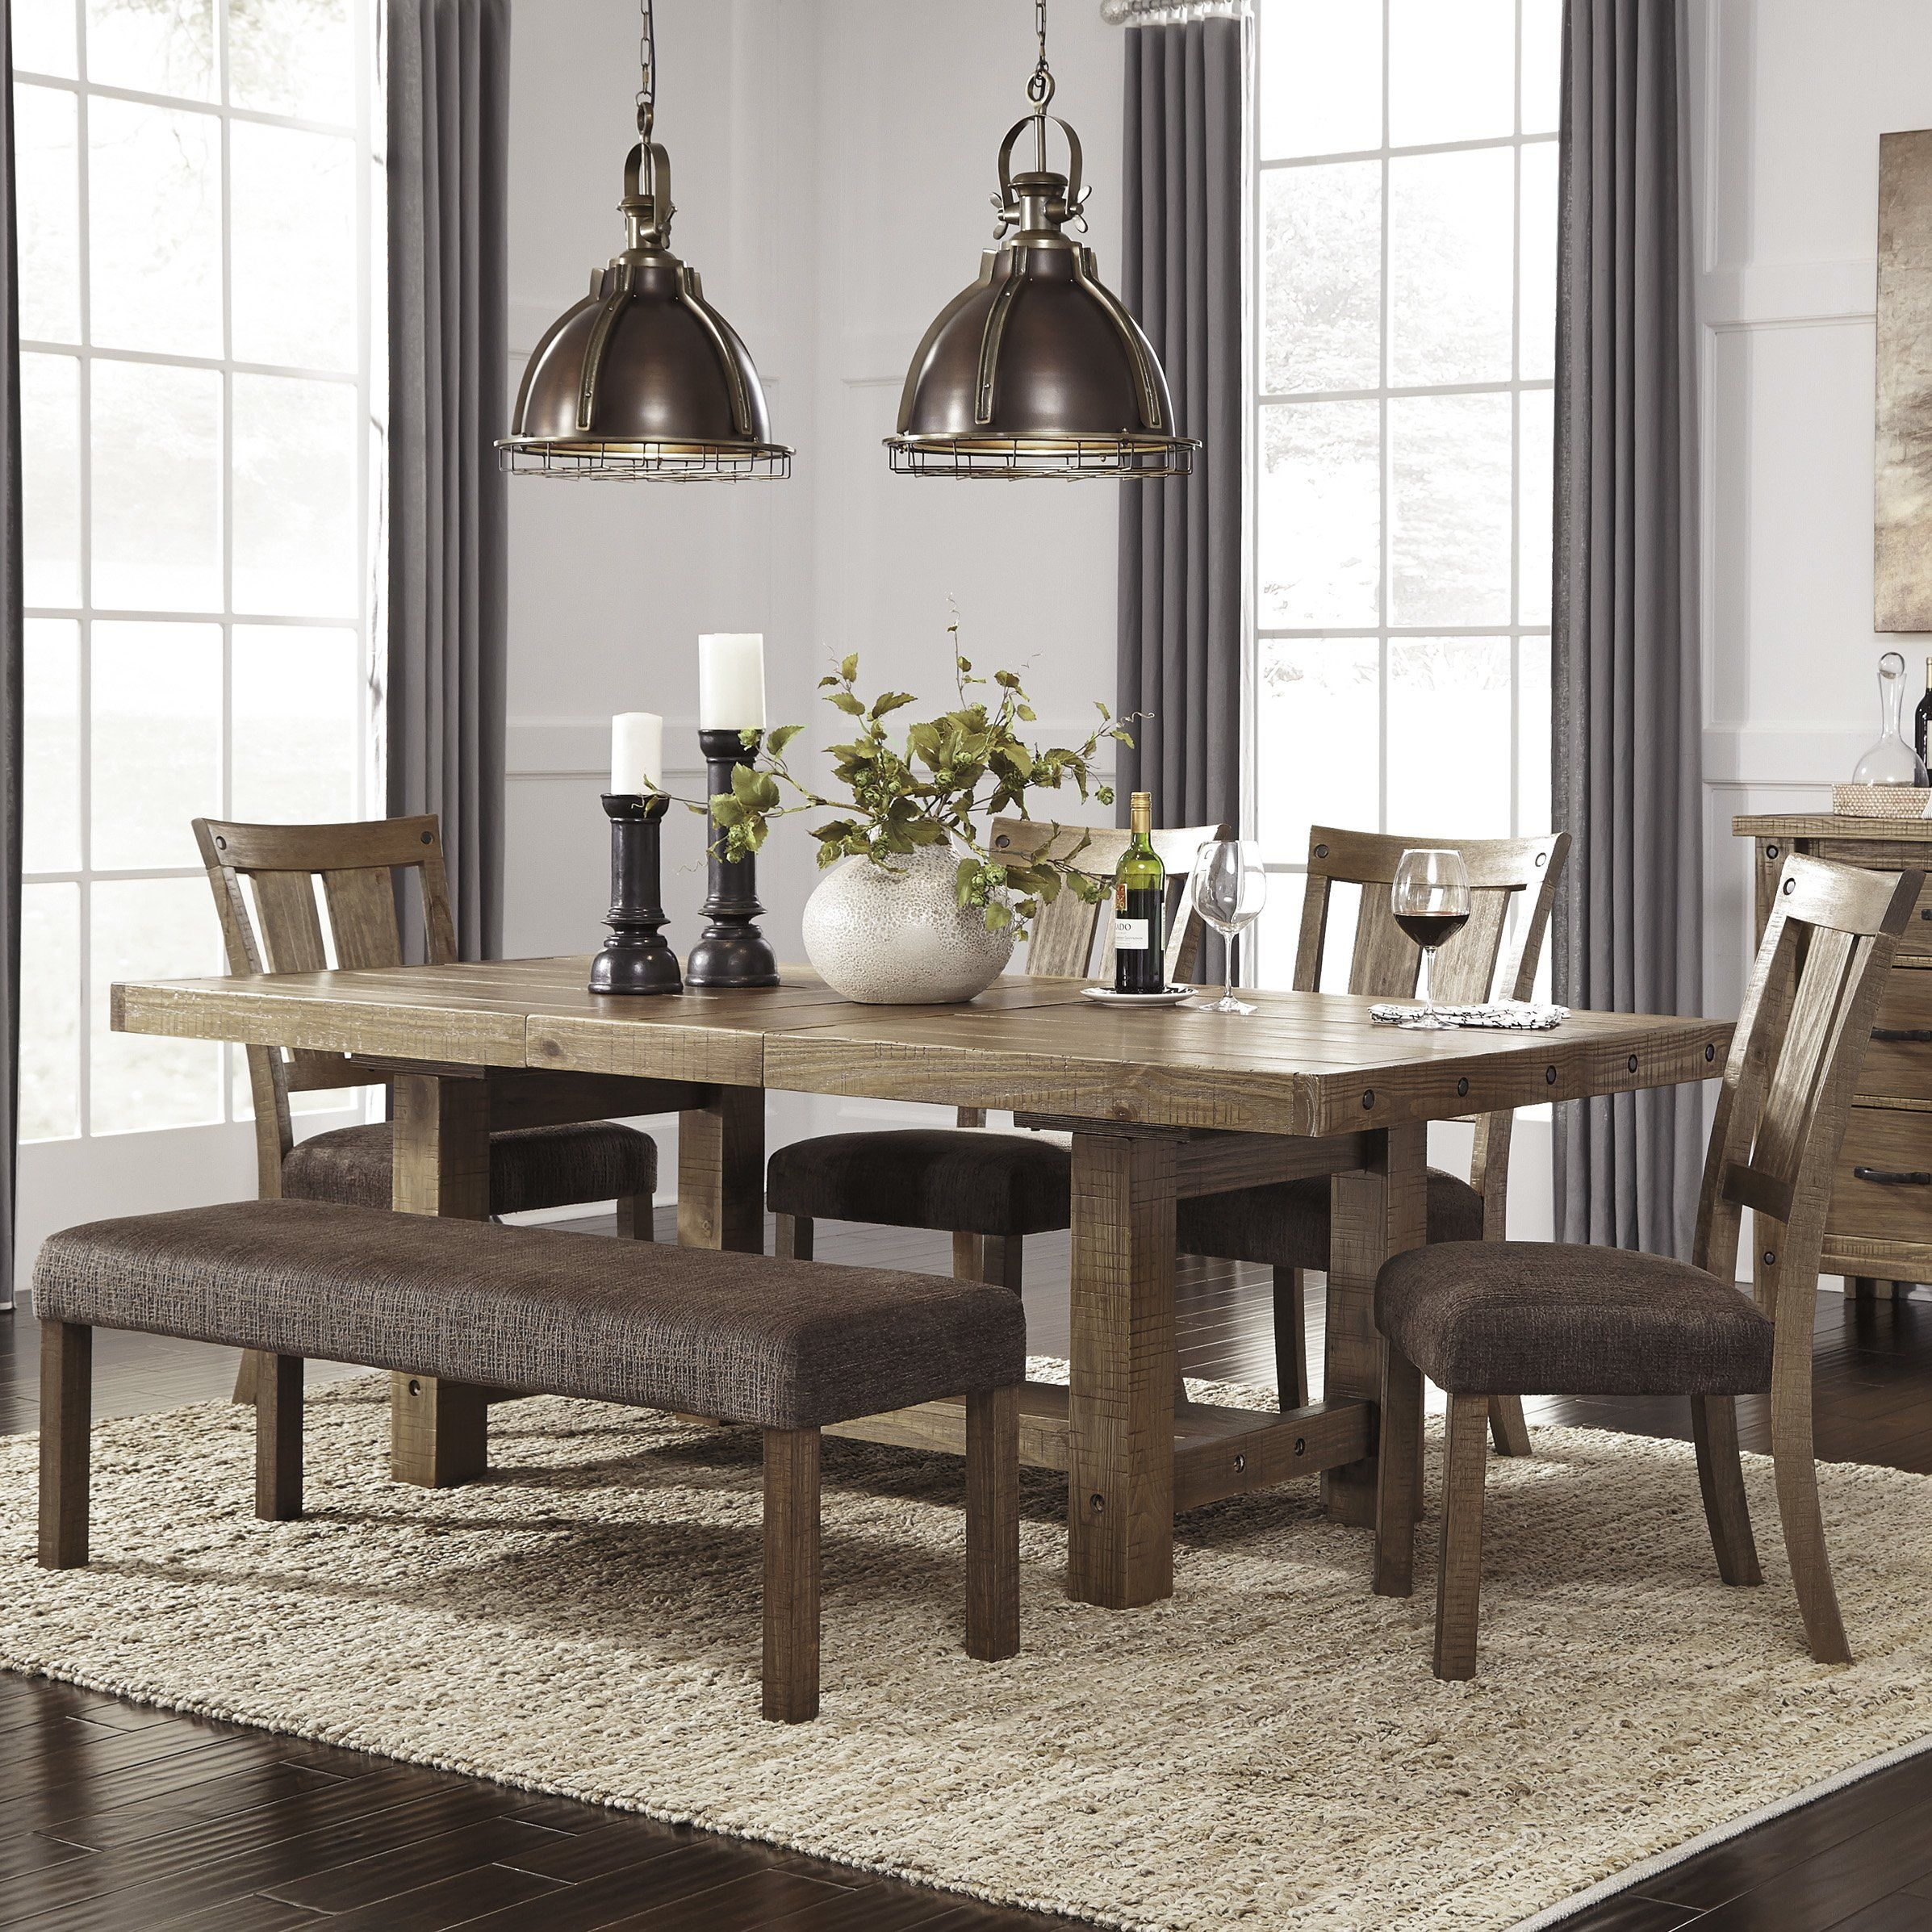 Etolin 6 Piece Extendable Dining Set | Farmhouse Dining Room In Latest Brown Wash Livingston Extending Dining Tables (View 14 of 25)